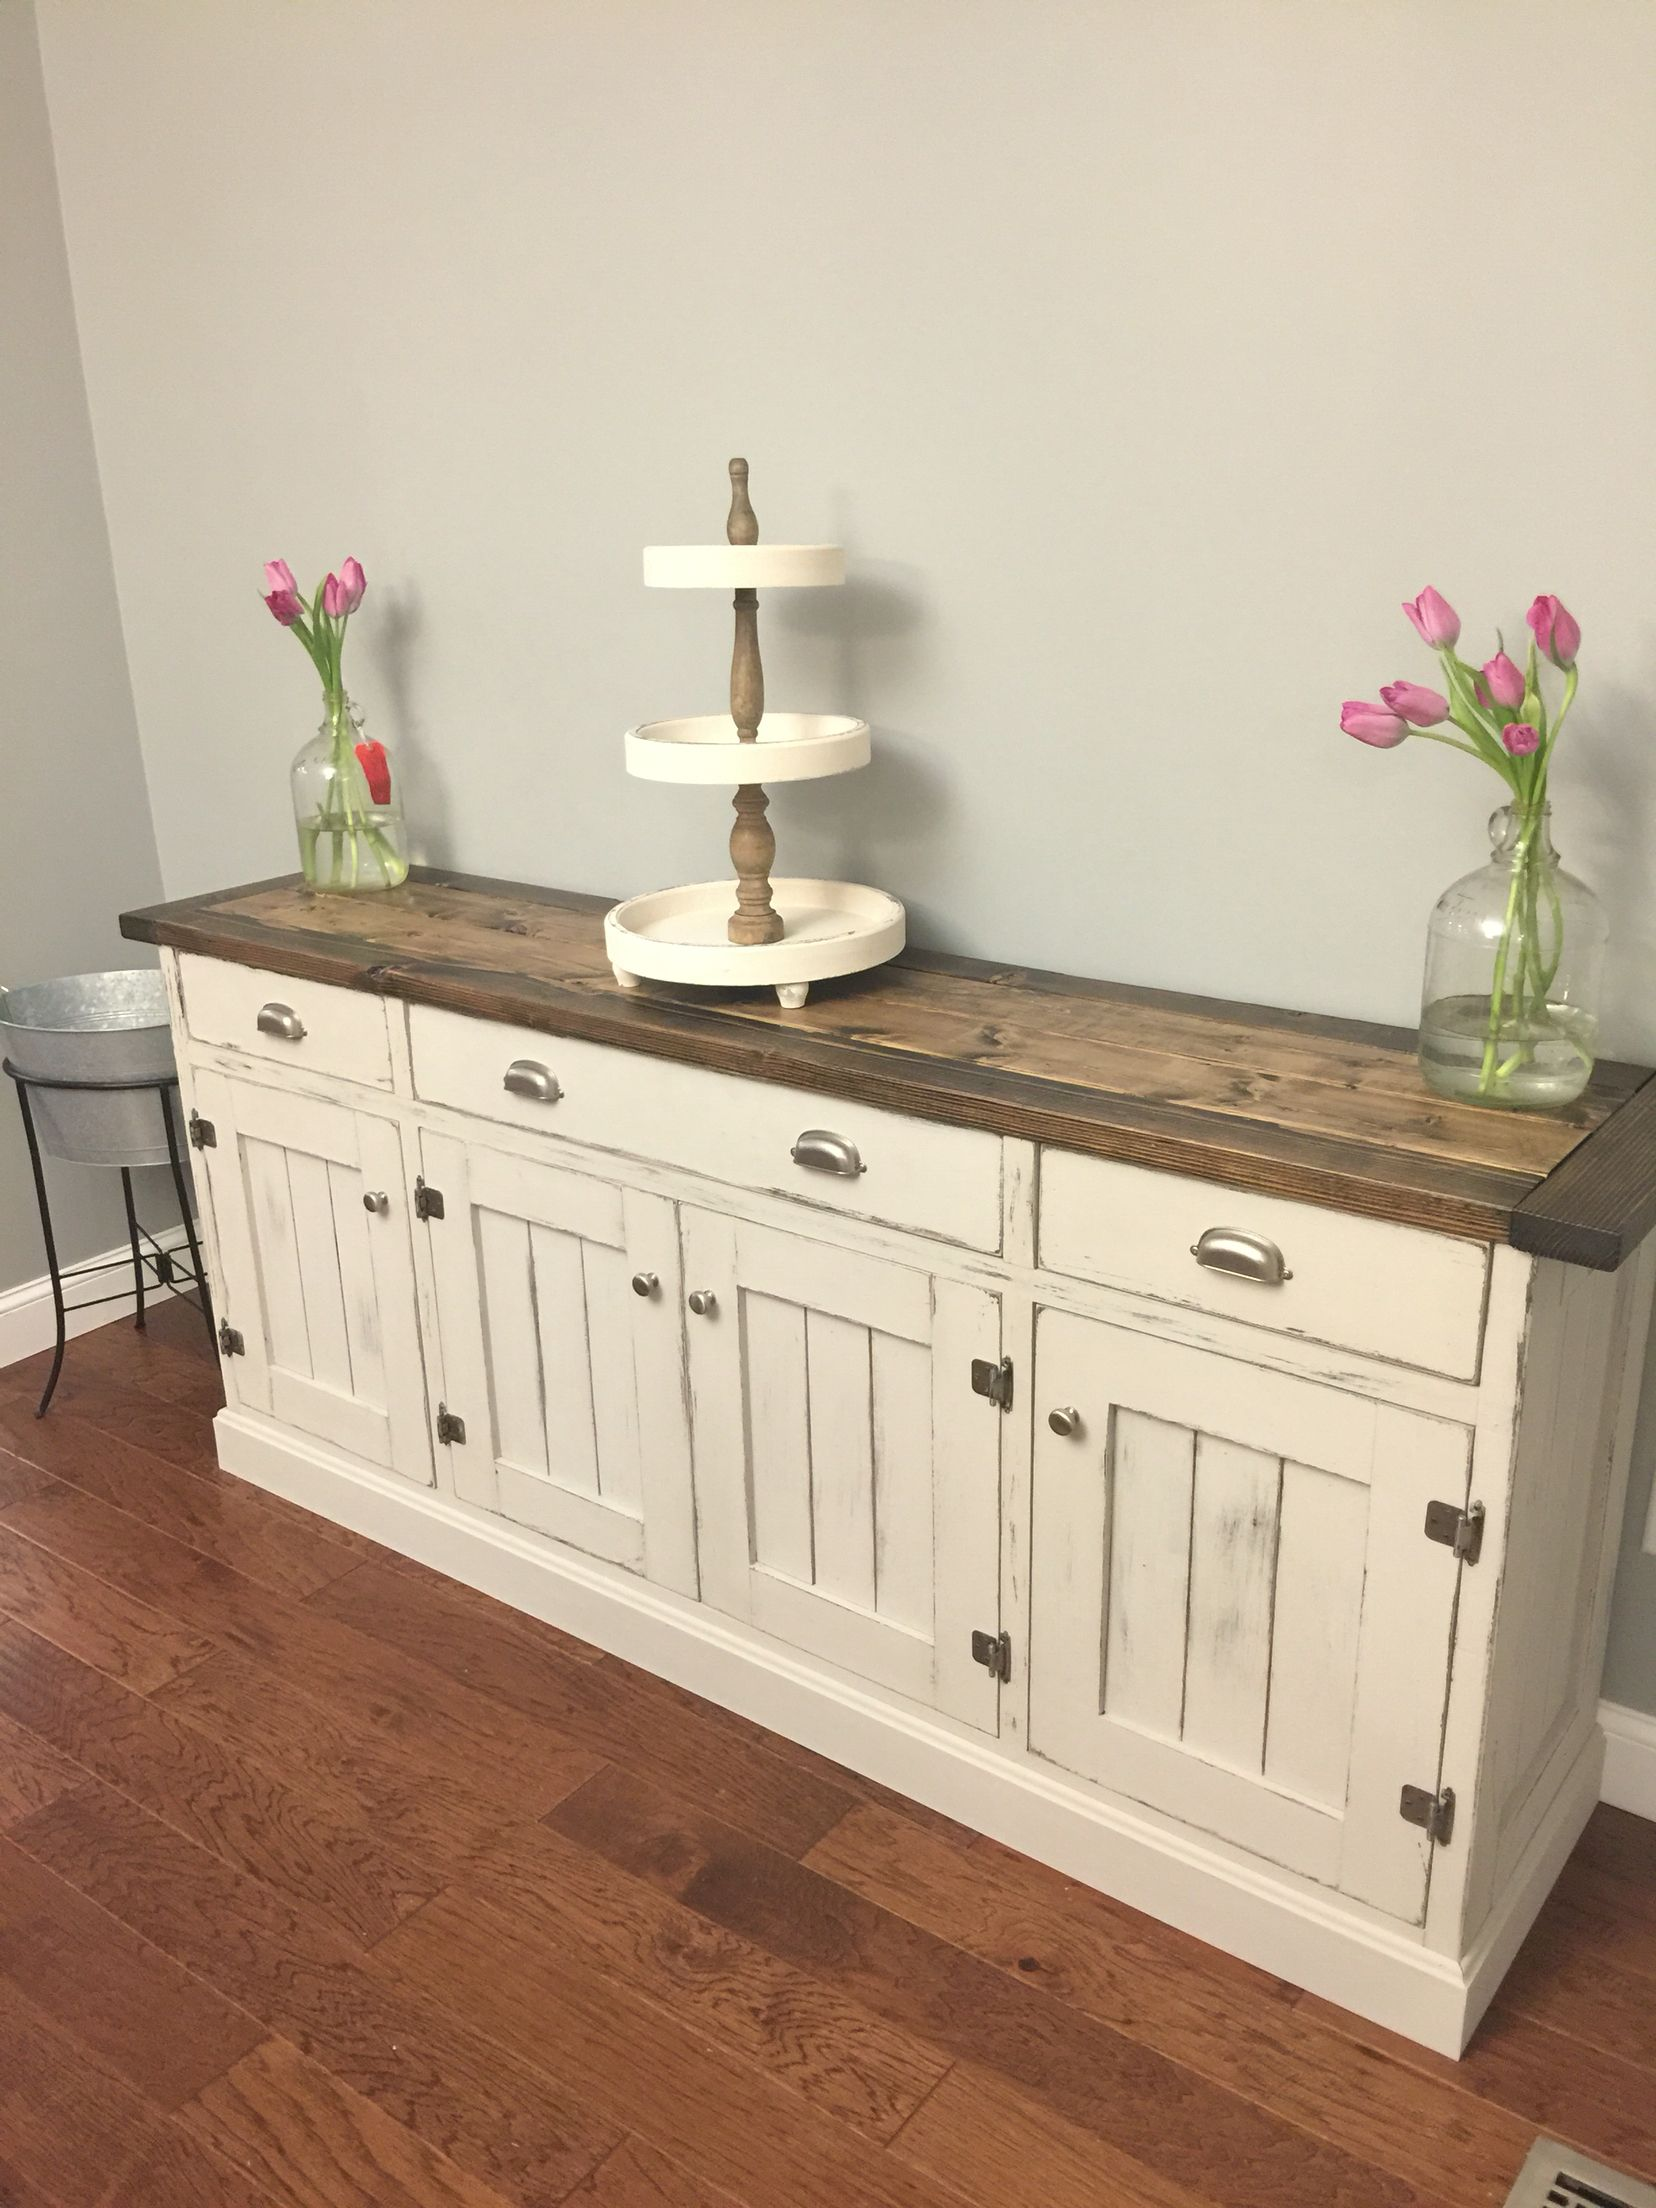 Dining Room Buffet So Pretty Love The Two Tone Finish Rustic Planked Wood Sideboard Anna White Diy